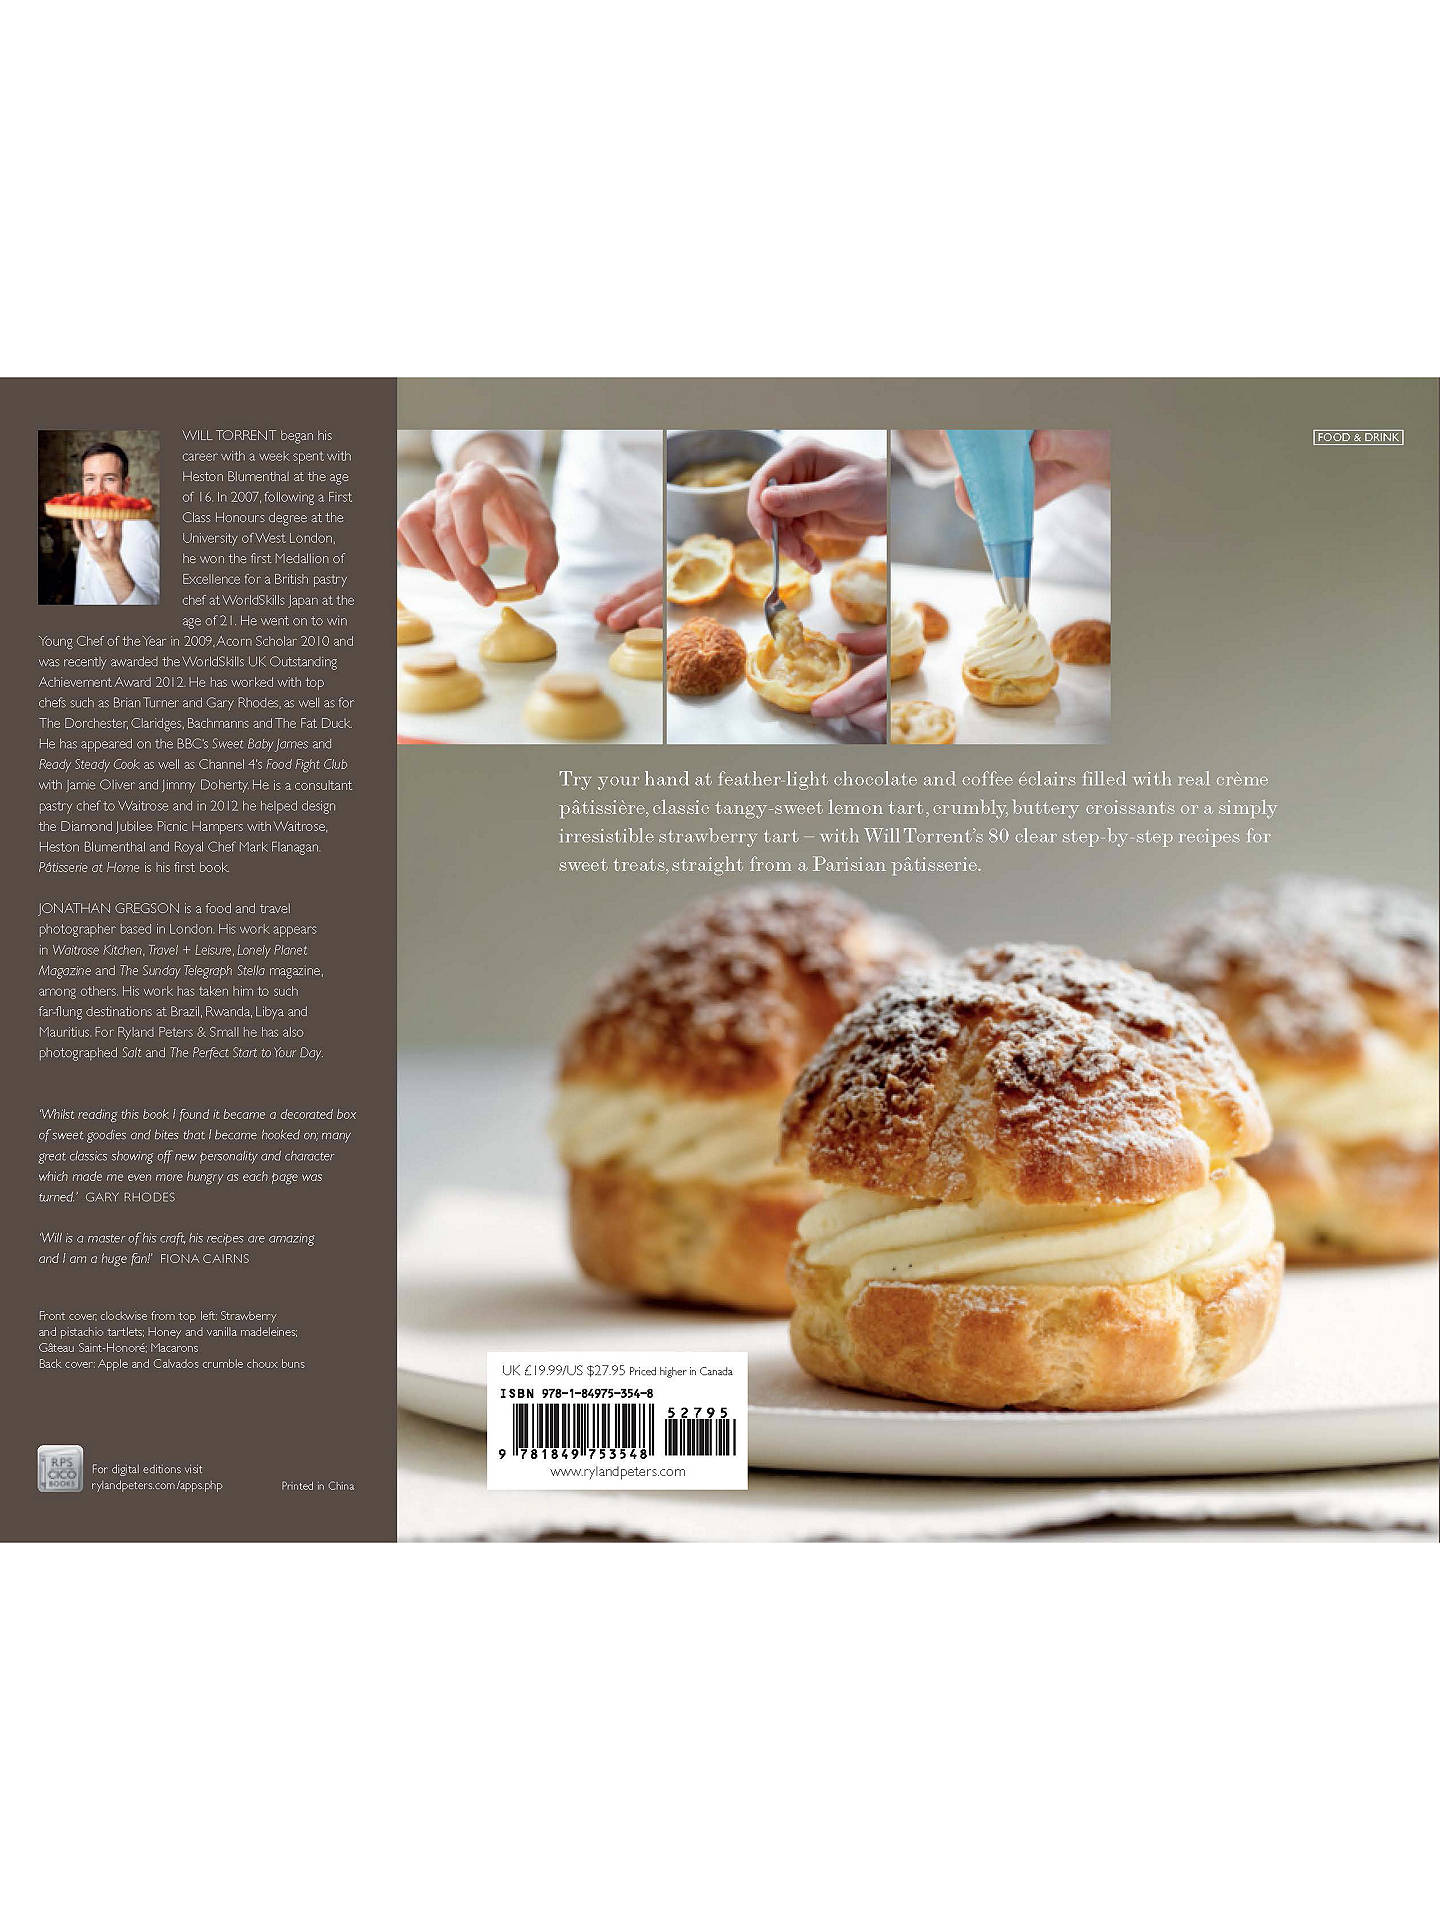 Patisserie At Home Recipe Book At John Lewis Partners